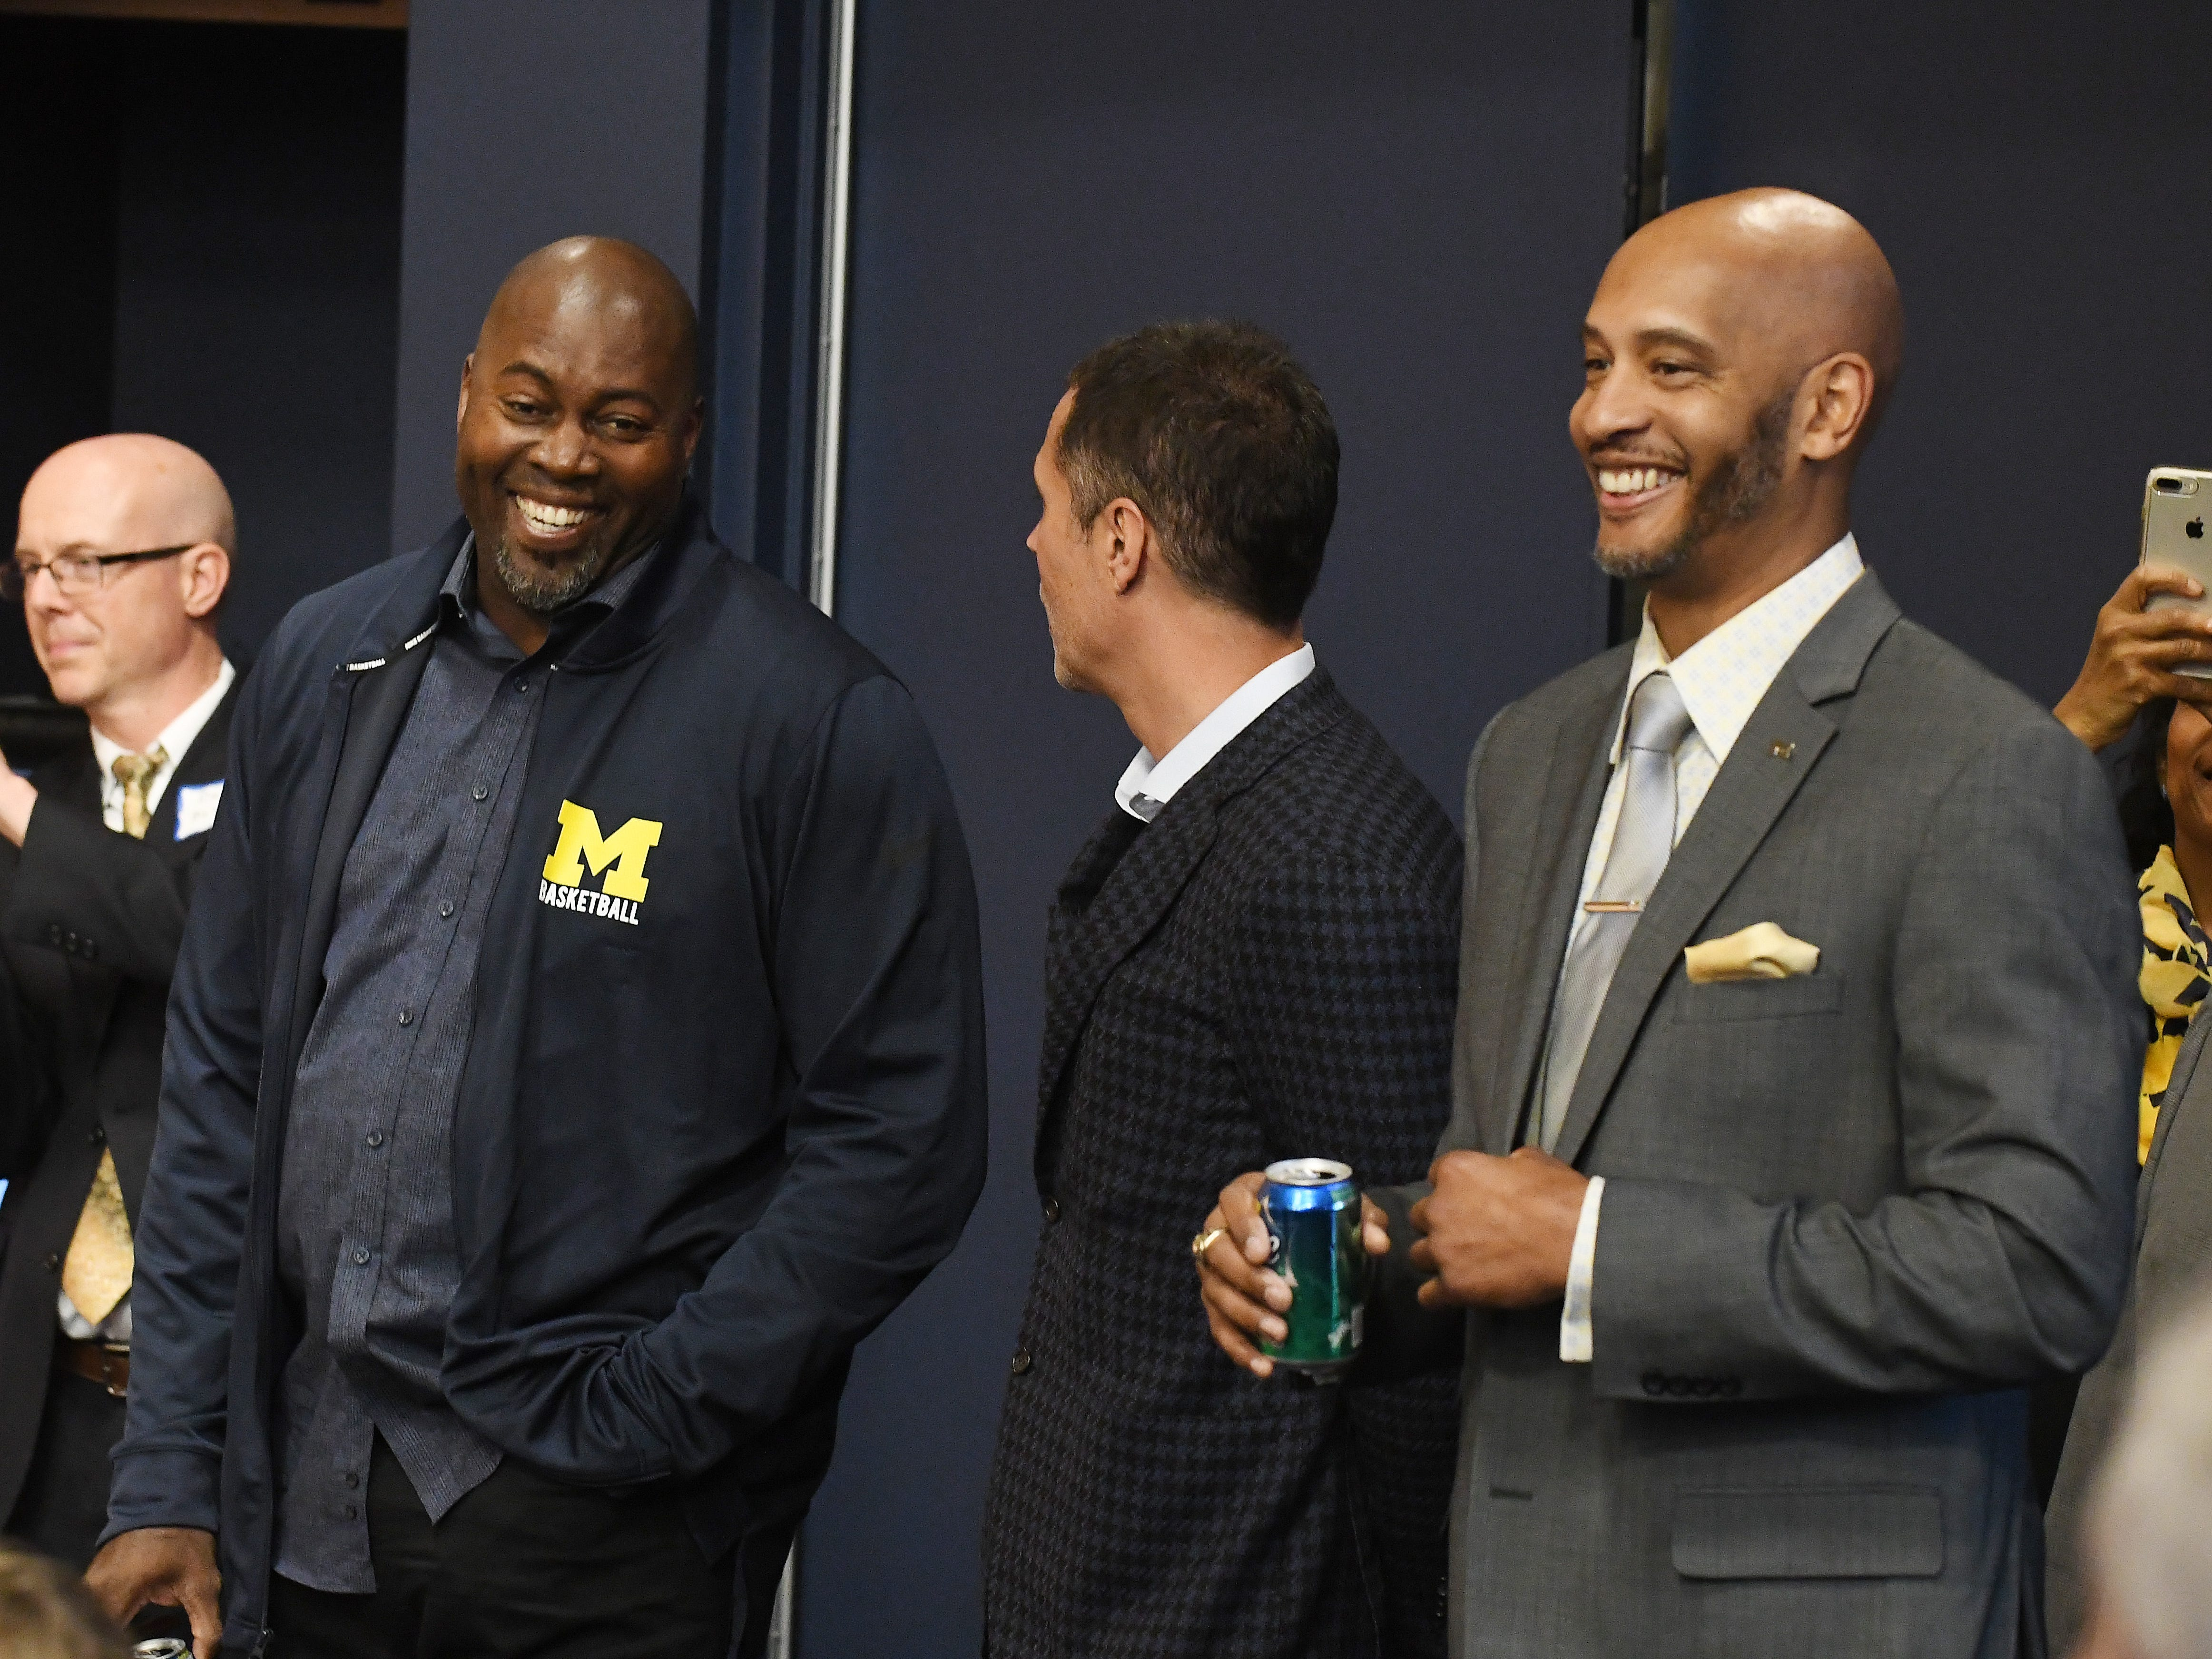 Members of the 1989 NCAA Championship team Glen Rice, Rob Pelinka and Sean Higgins during a pregame press conference.